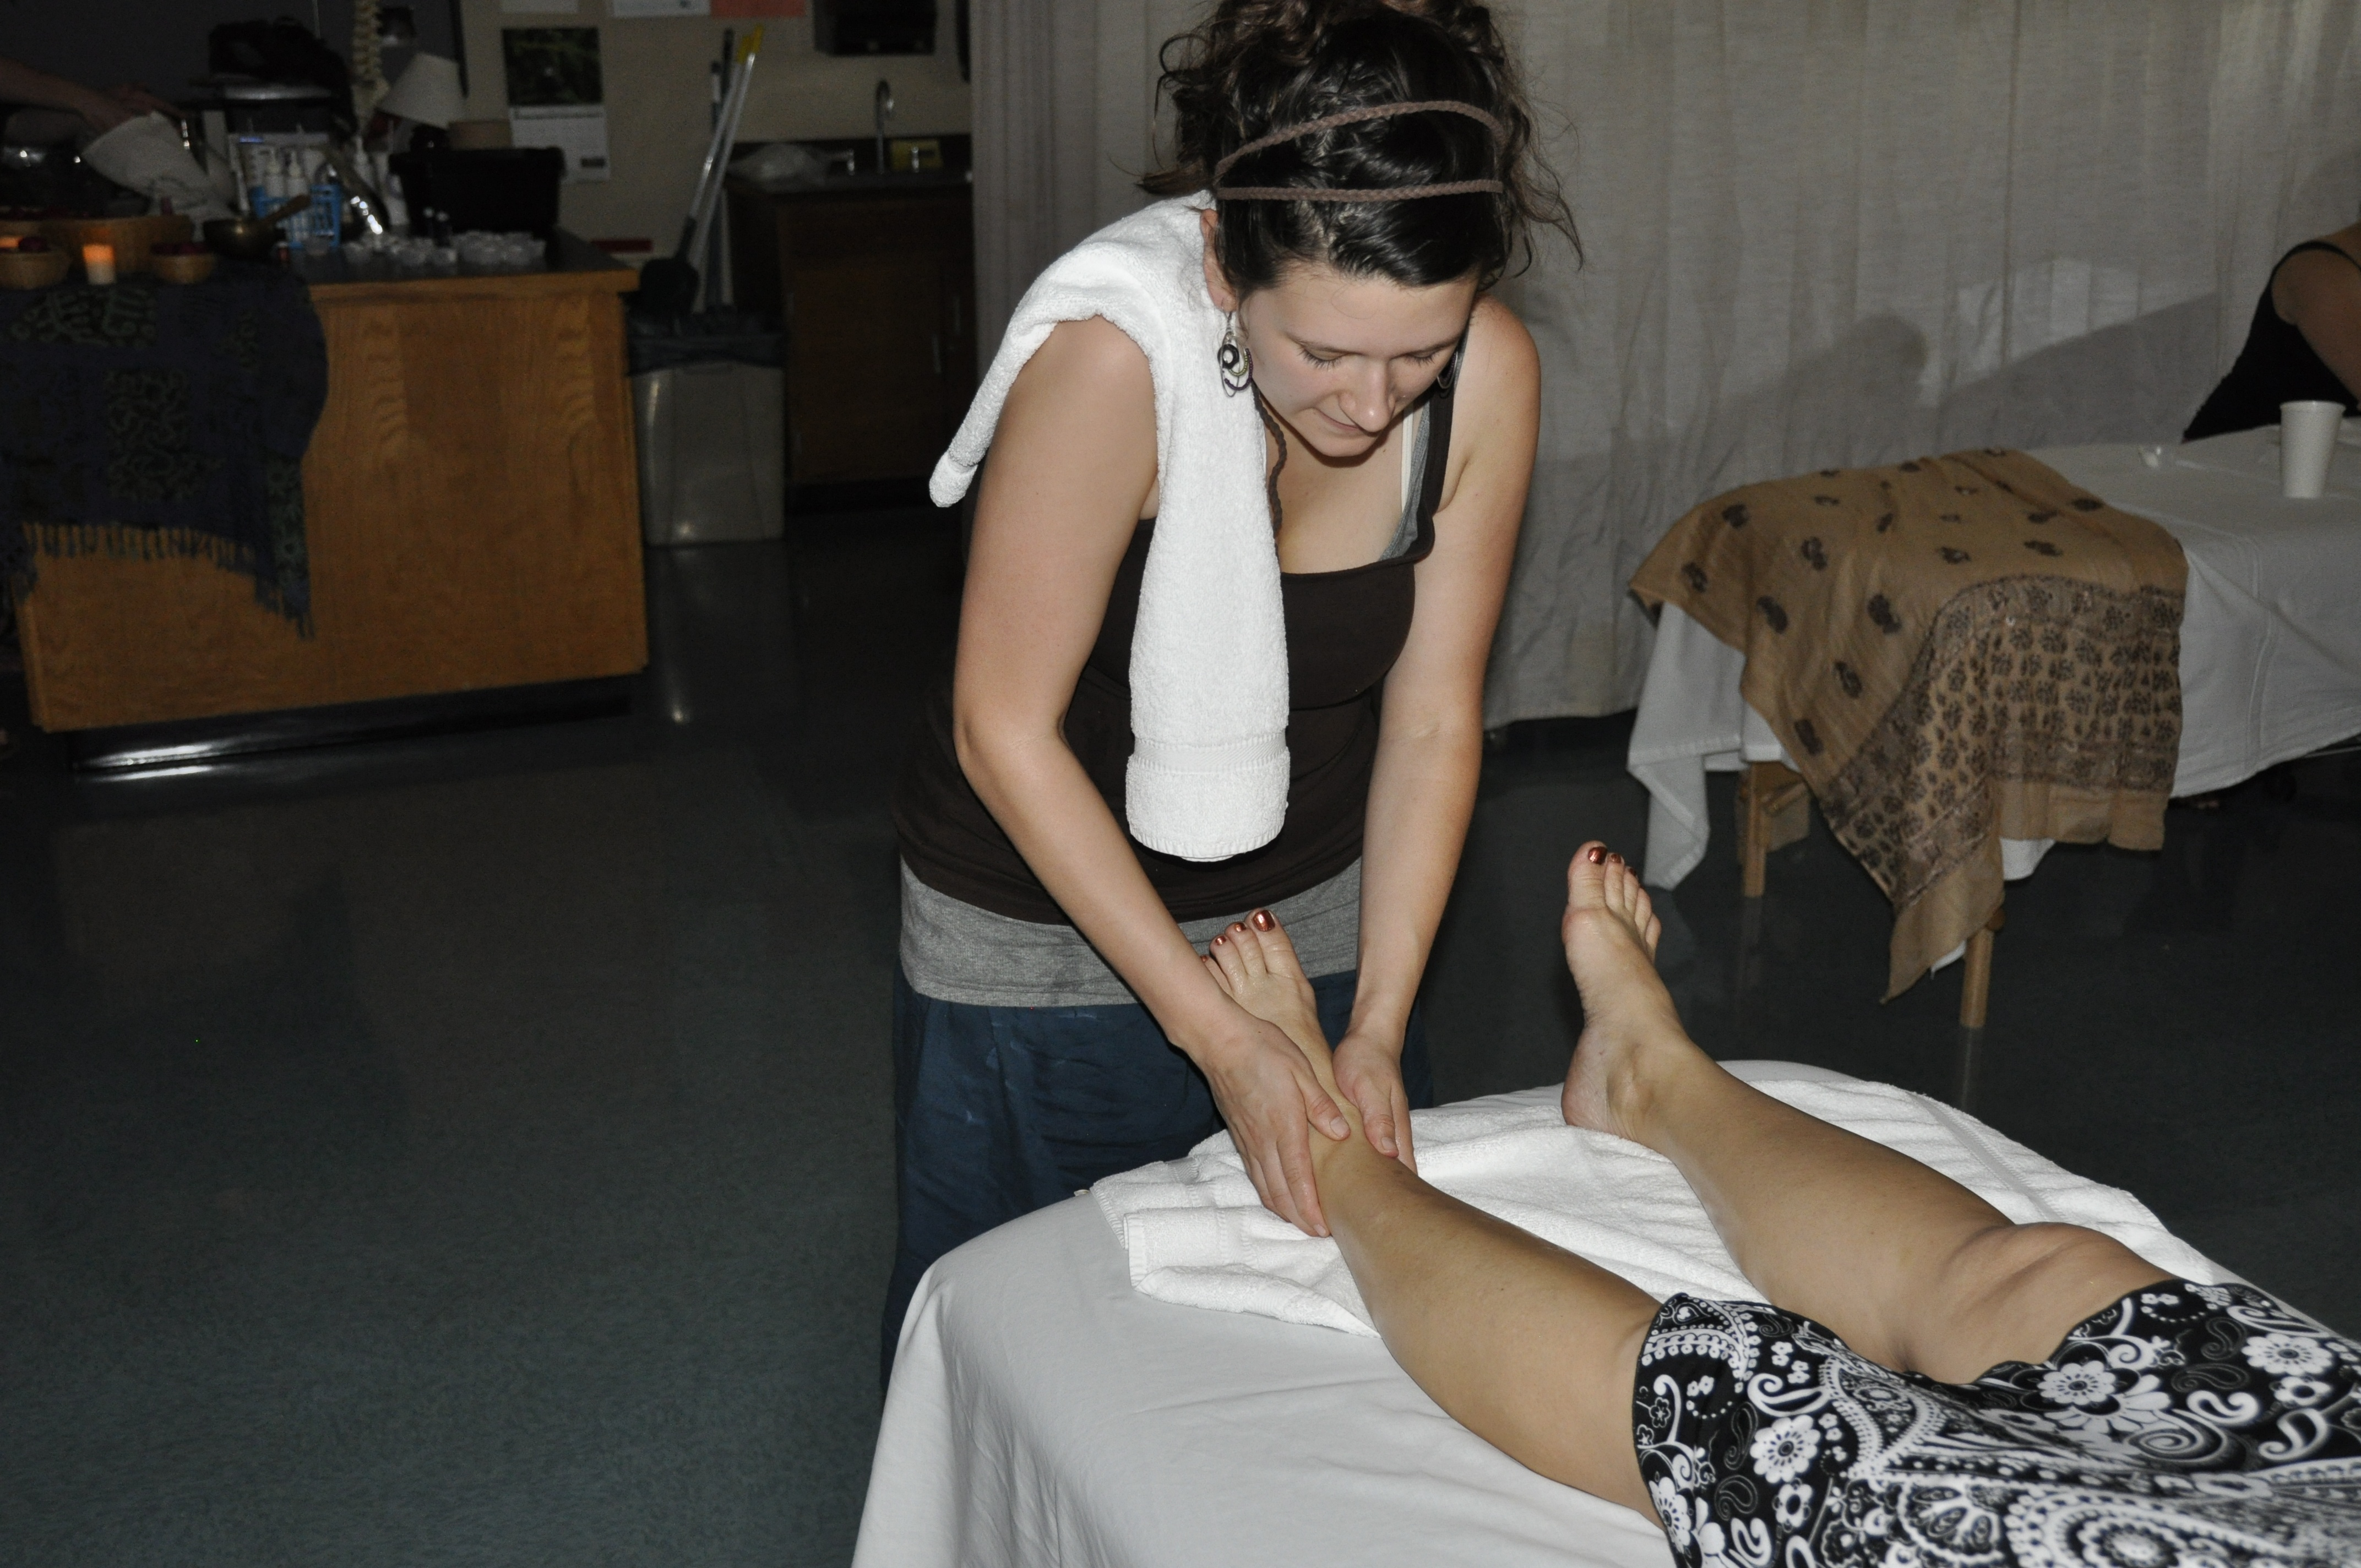 Massage Therapy Certificate